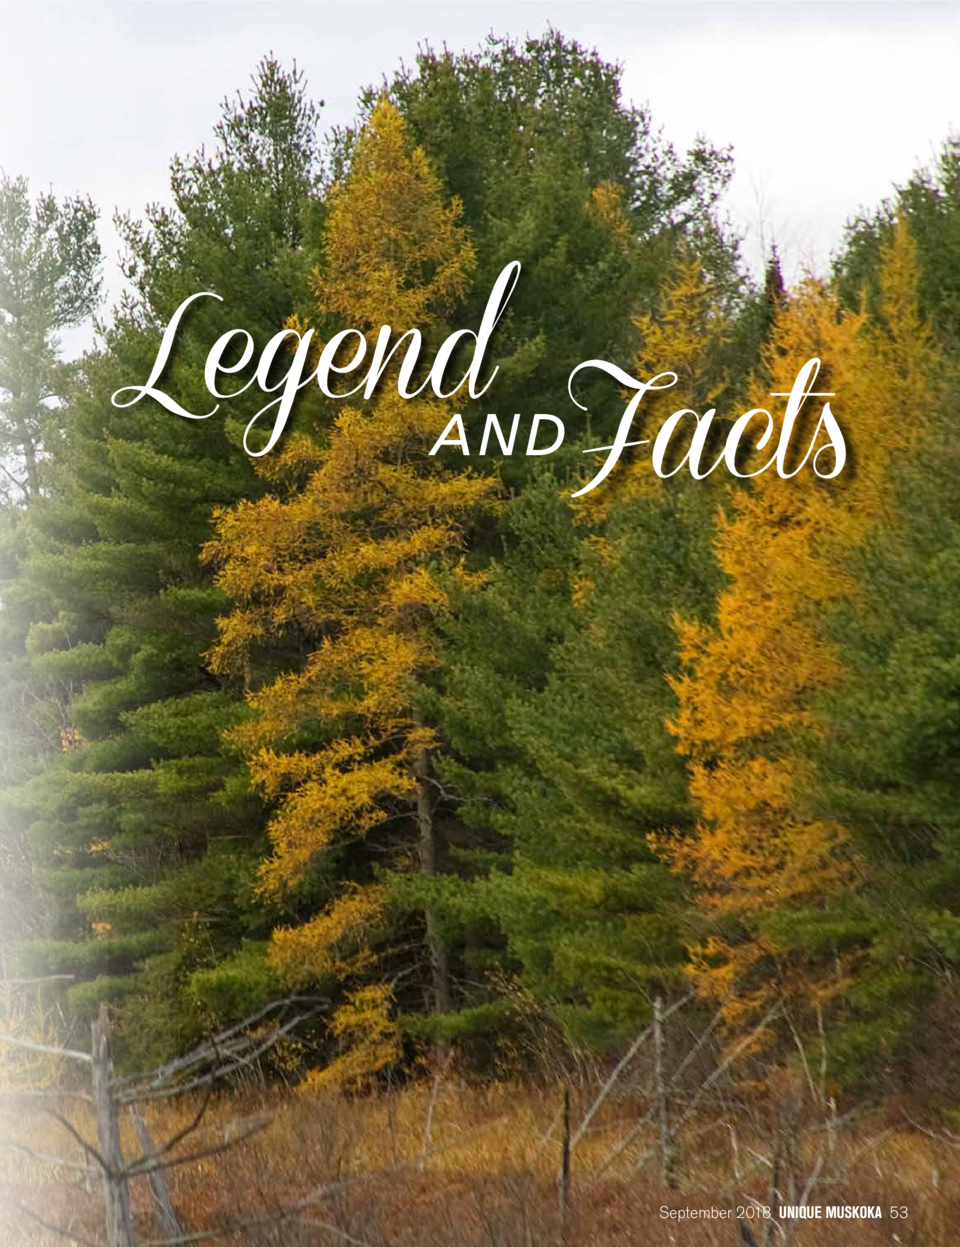 Legend ANDFacts  September 2018 UNIQUE MUSKOKA 53